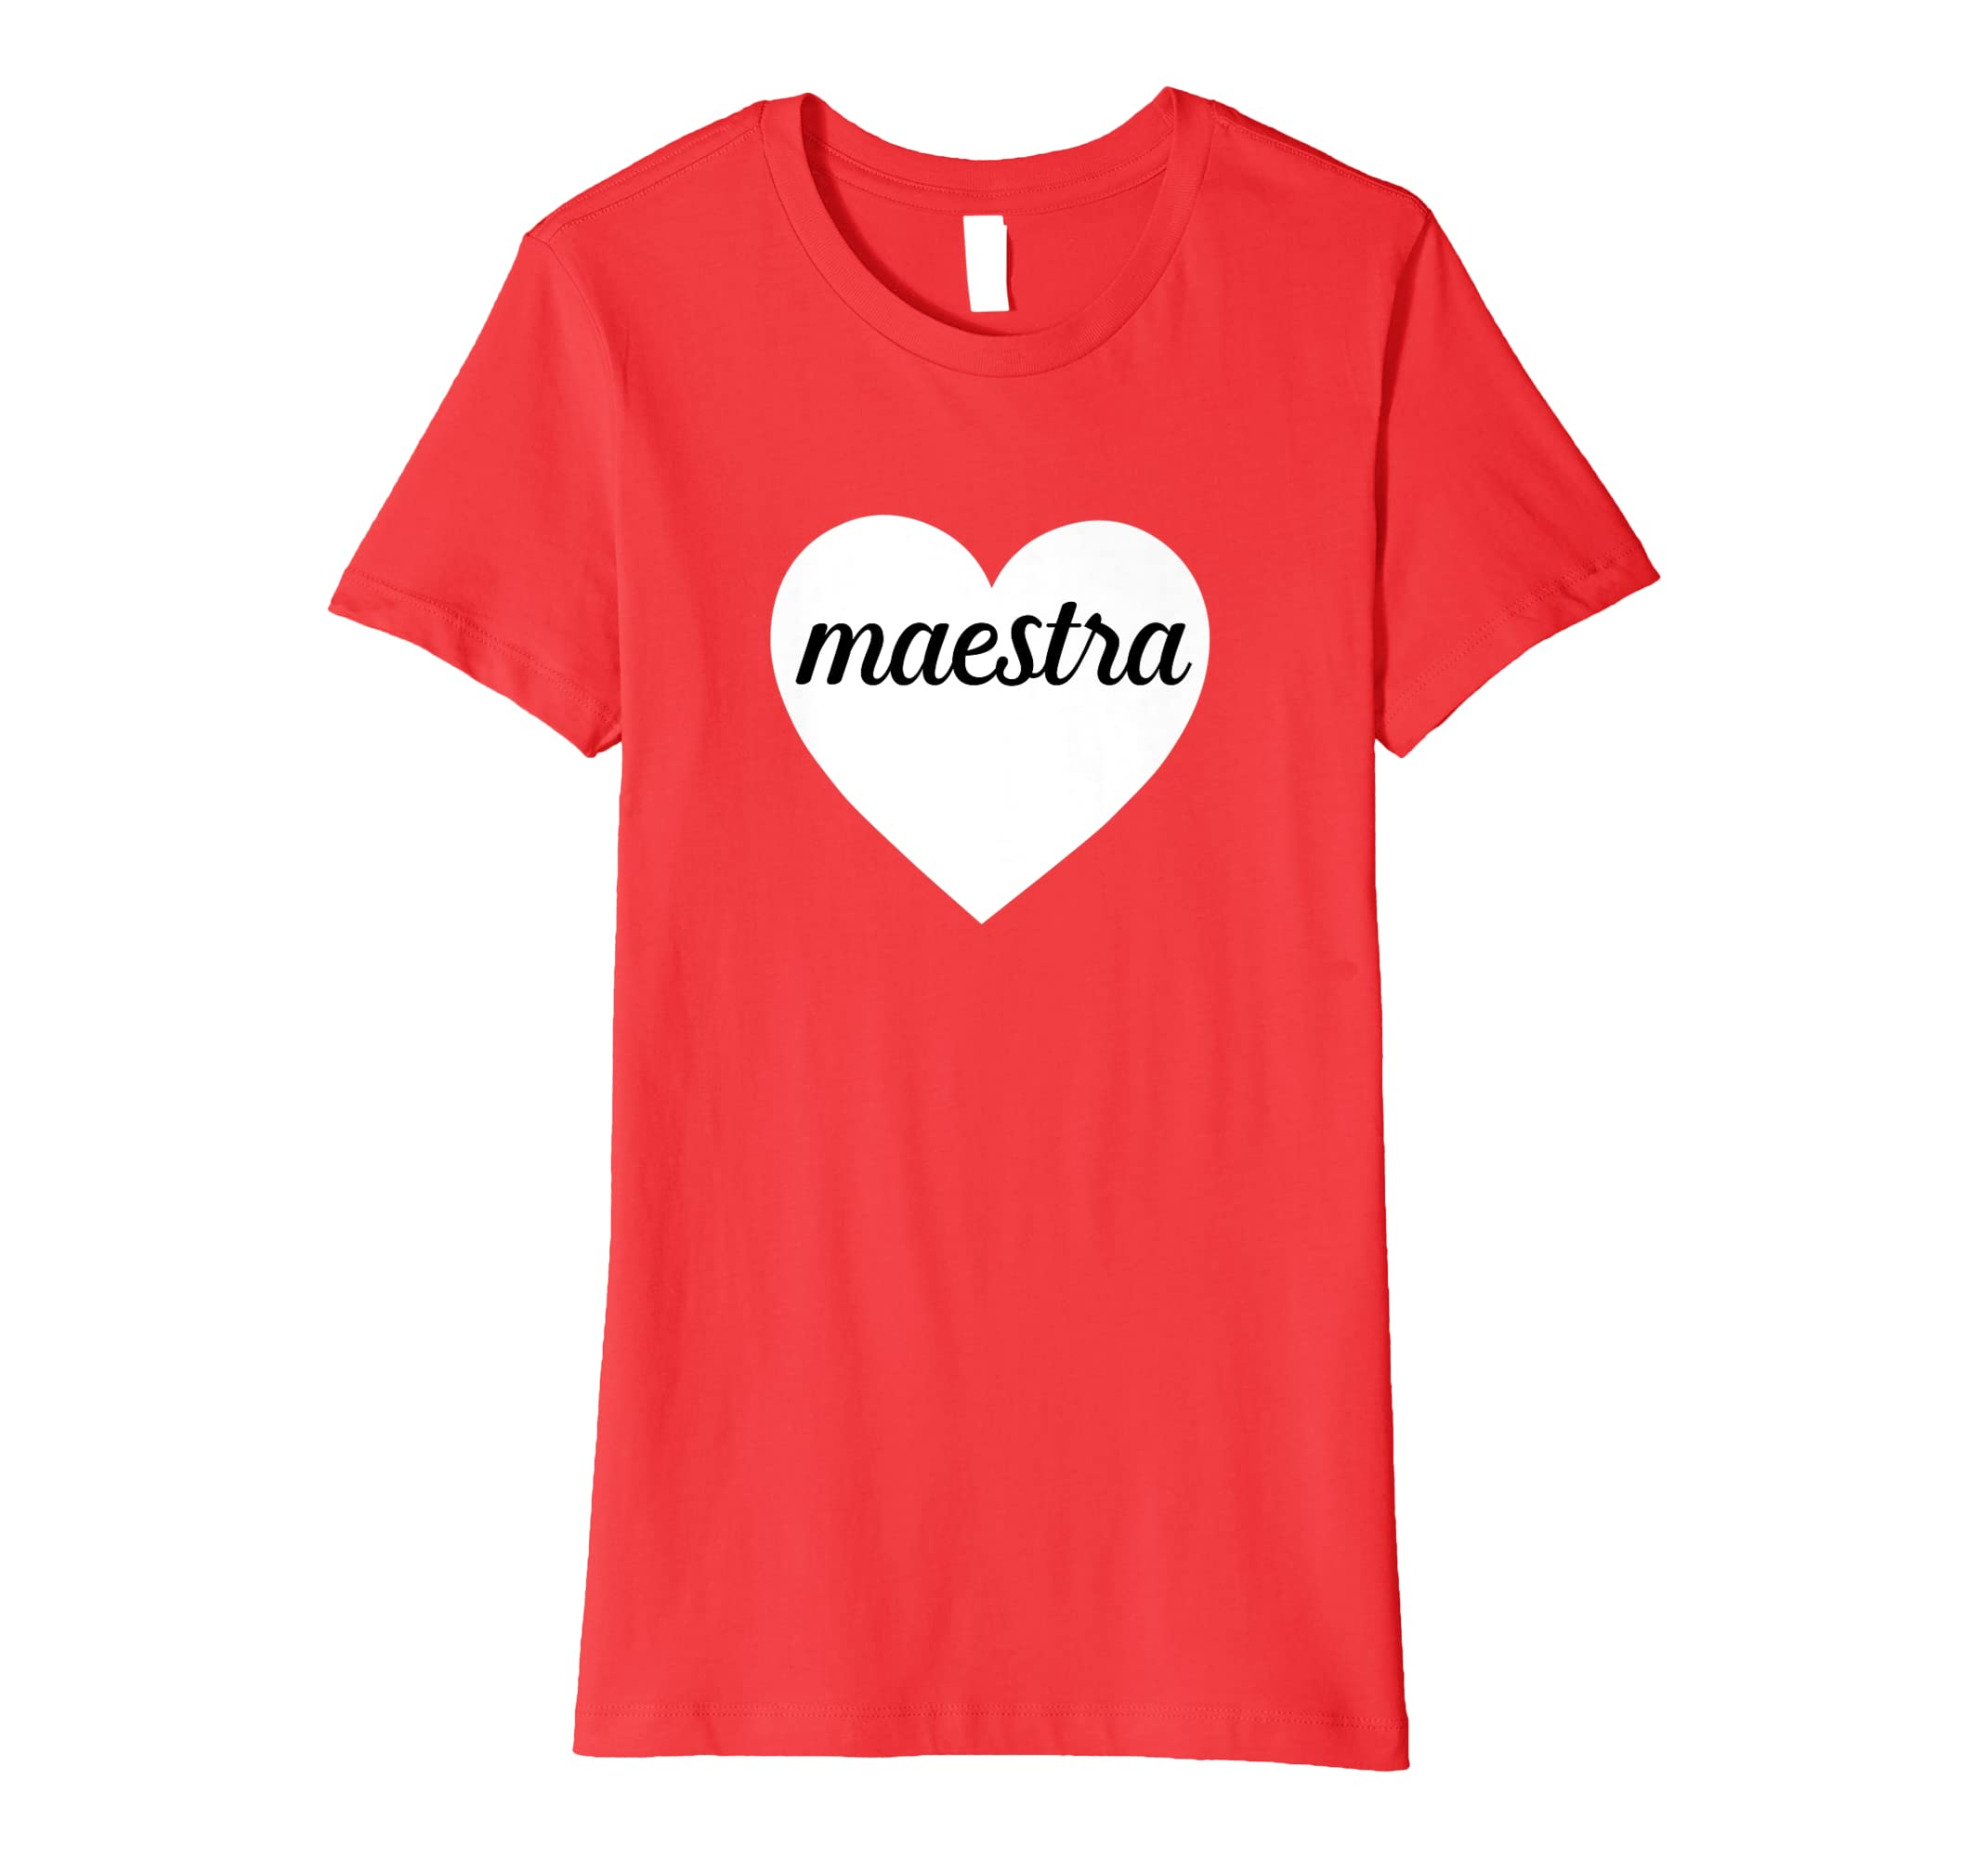 ac0d1042 Amazon.com: Maestra T-Shirt Spanish Bilingual Teacher Tee: Clothing